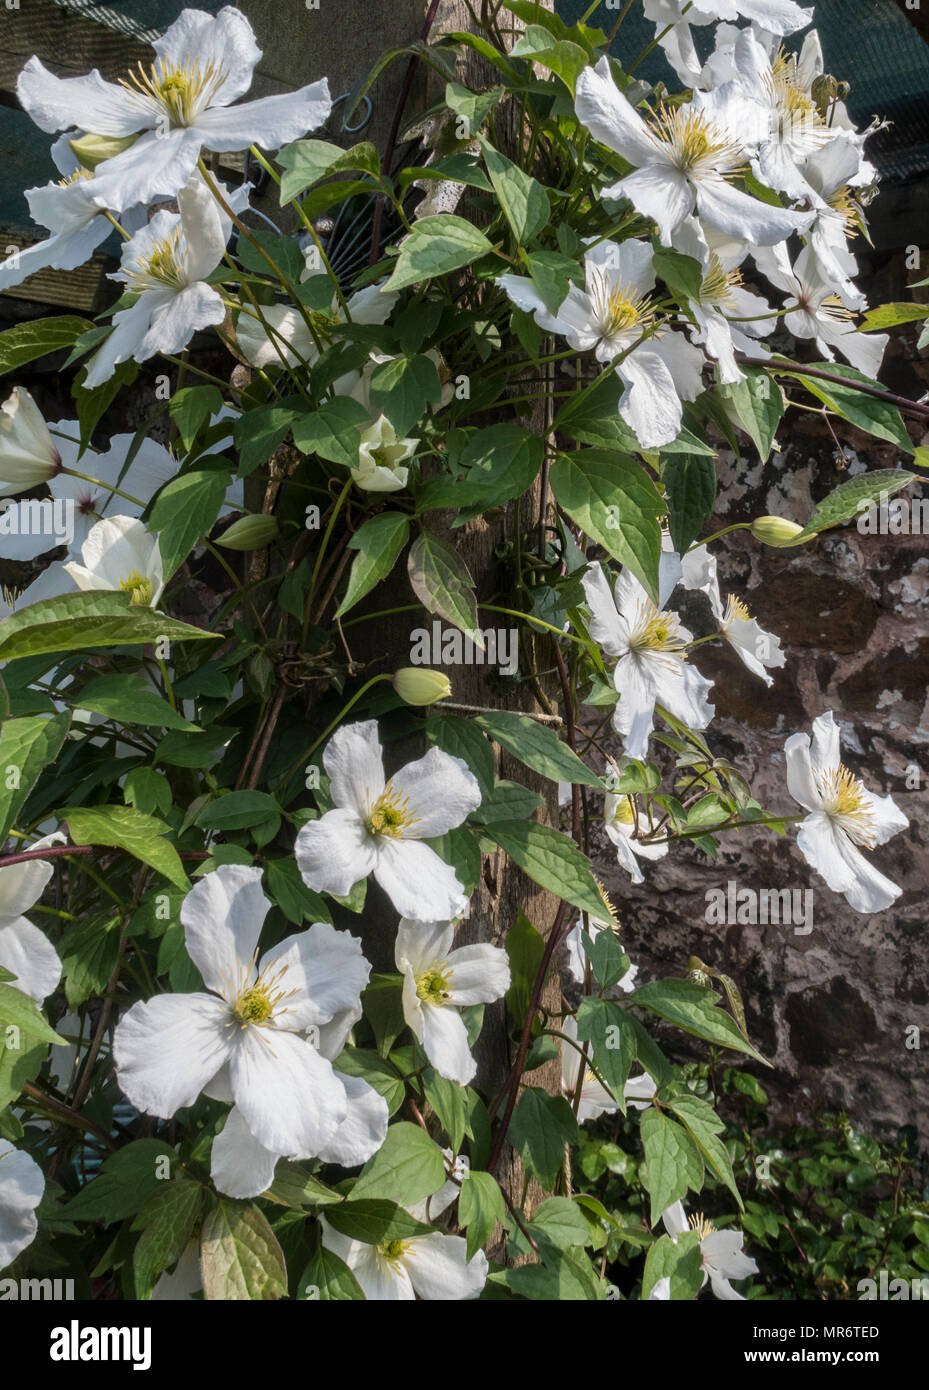 Clematis spooneri,a vigorous fast growing climber with white flowers and yellow filaments, - Stock Image